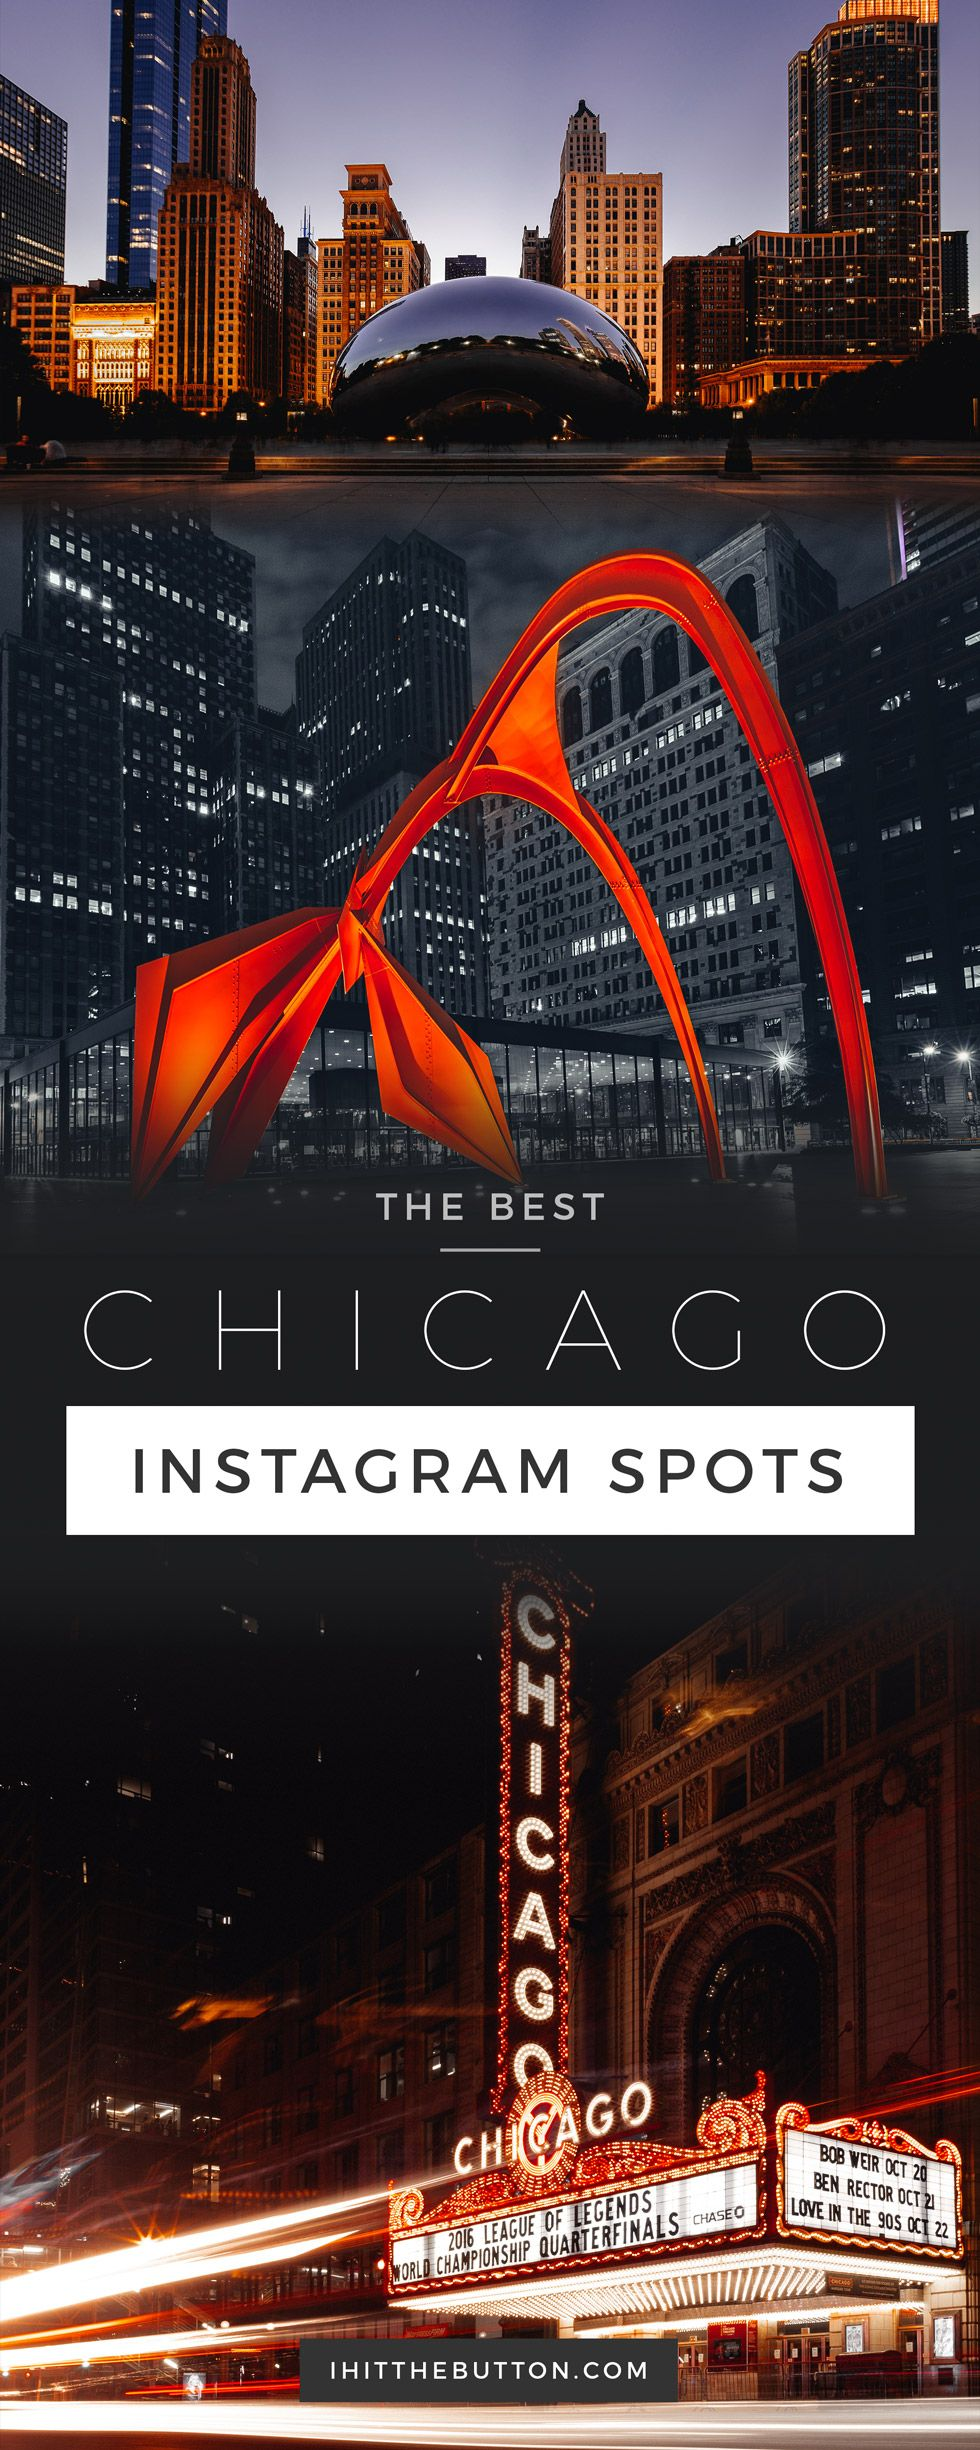 The 12 Best Places To Take Pictures In Chicago Travel Guide Chicago Photos Chicago Travel Guide Chicago Travel